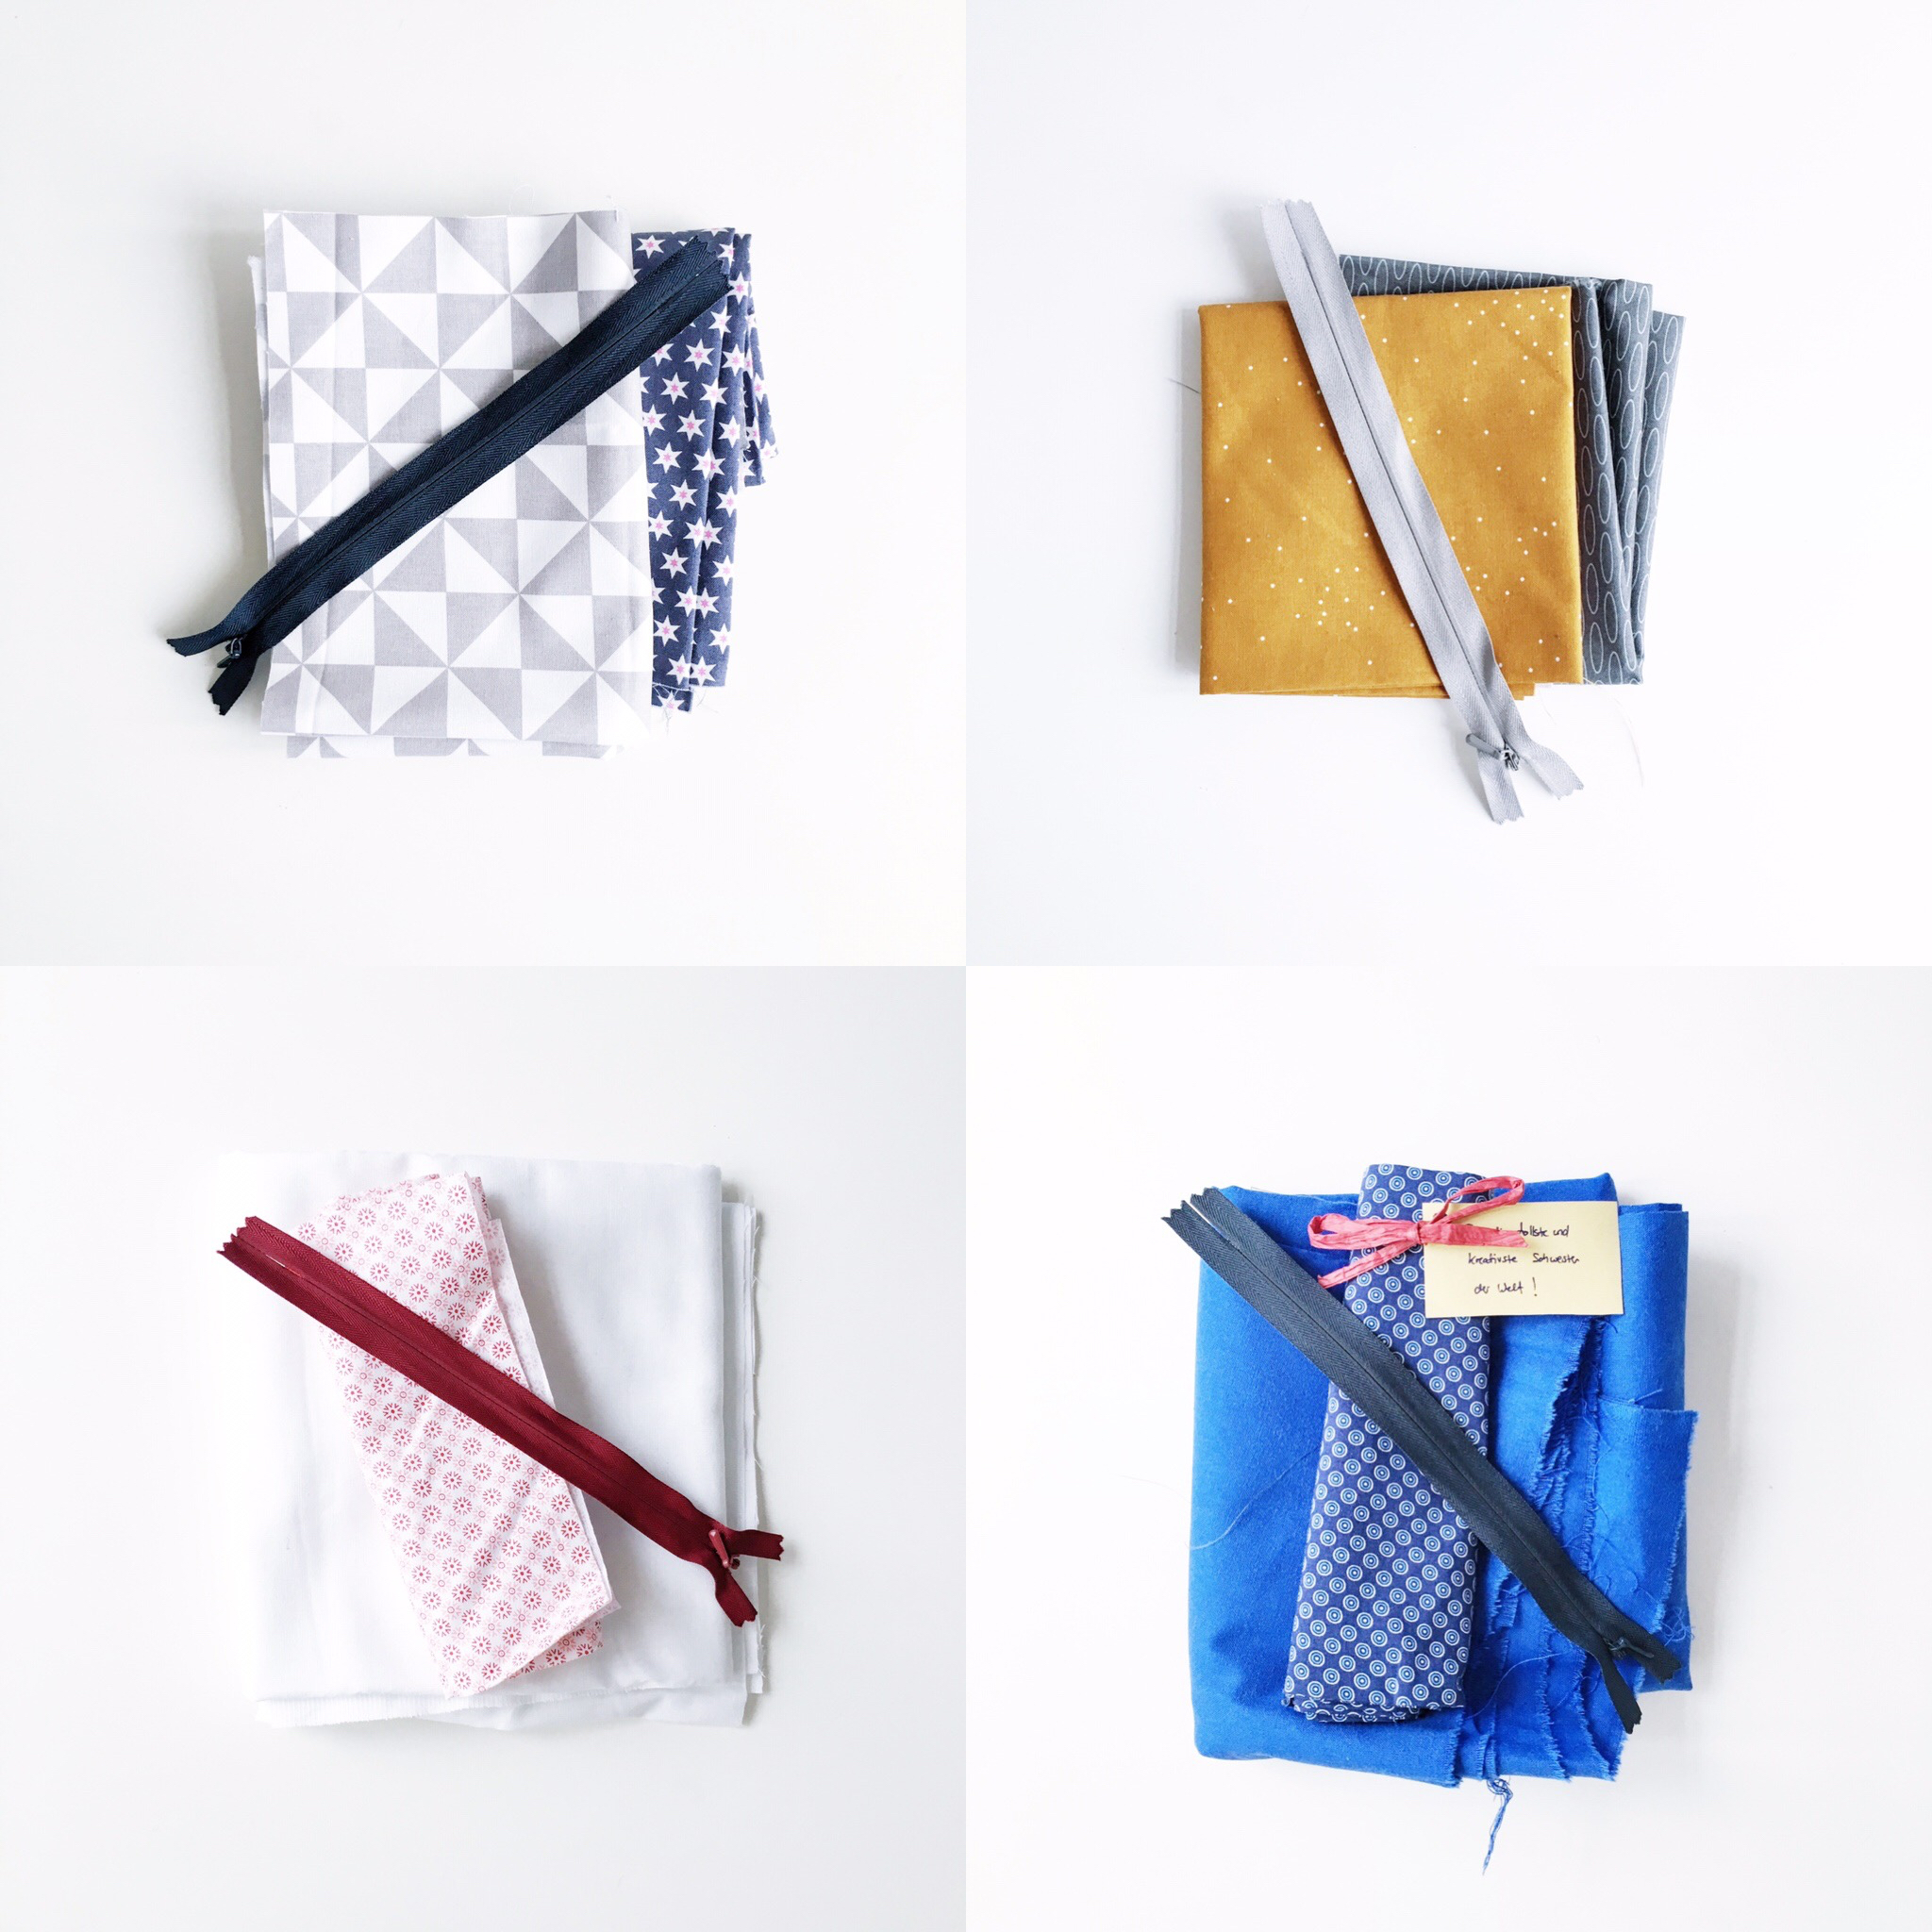 Sneak peek: First step of making zipper pouches that will be available in the Etsy shop!